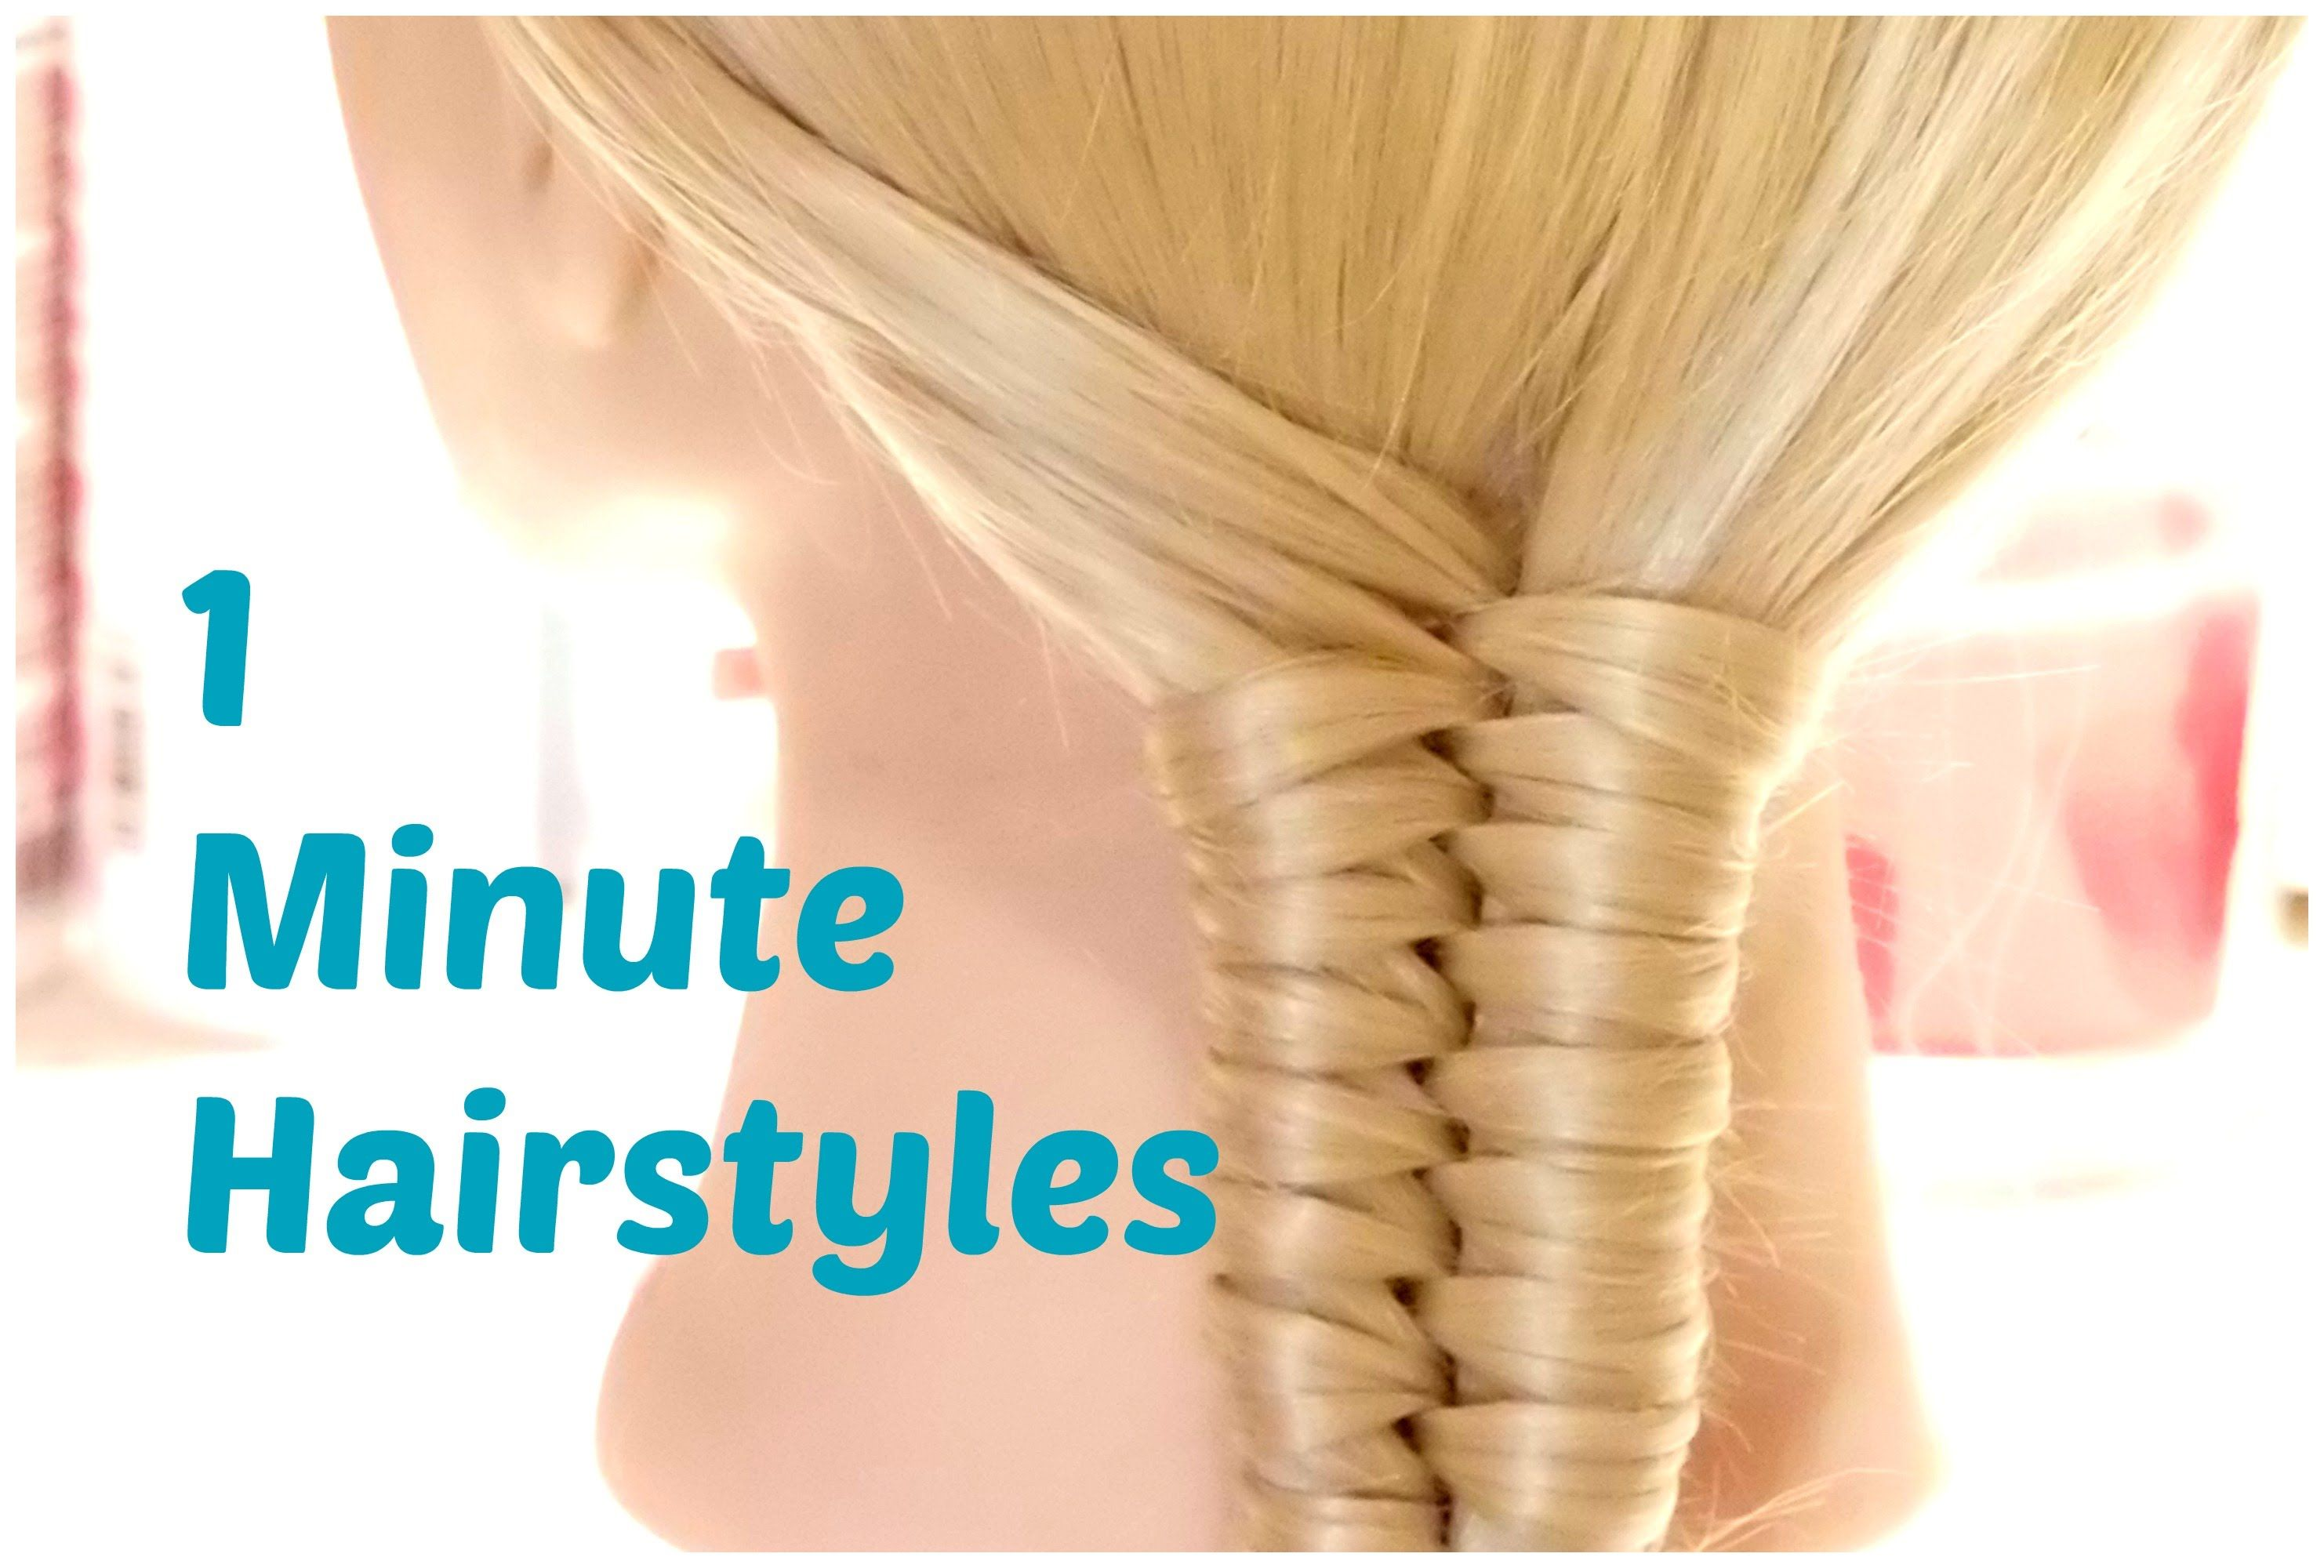 2 Minute Hairstyles 1 Minute Hairstyles  Easy Summer Hairstyles  Crix Tutorials